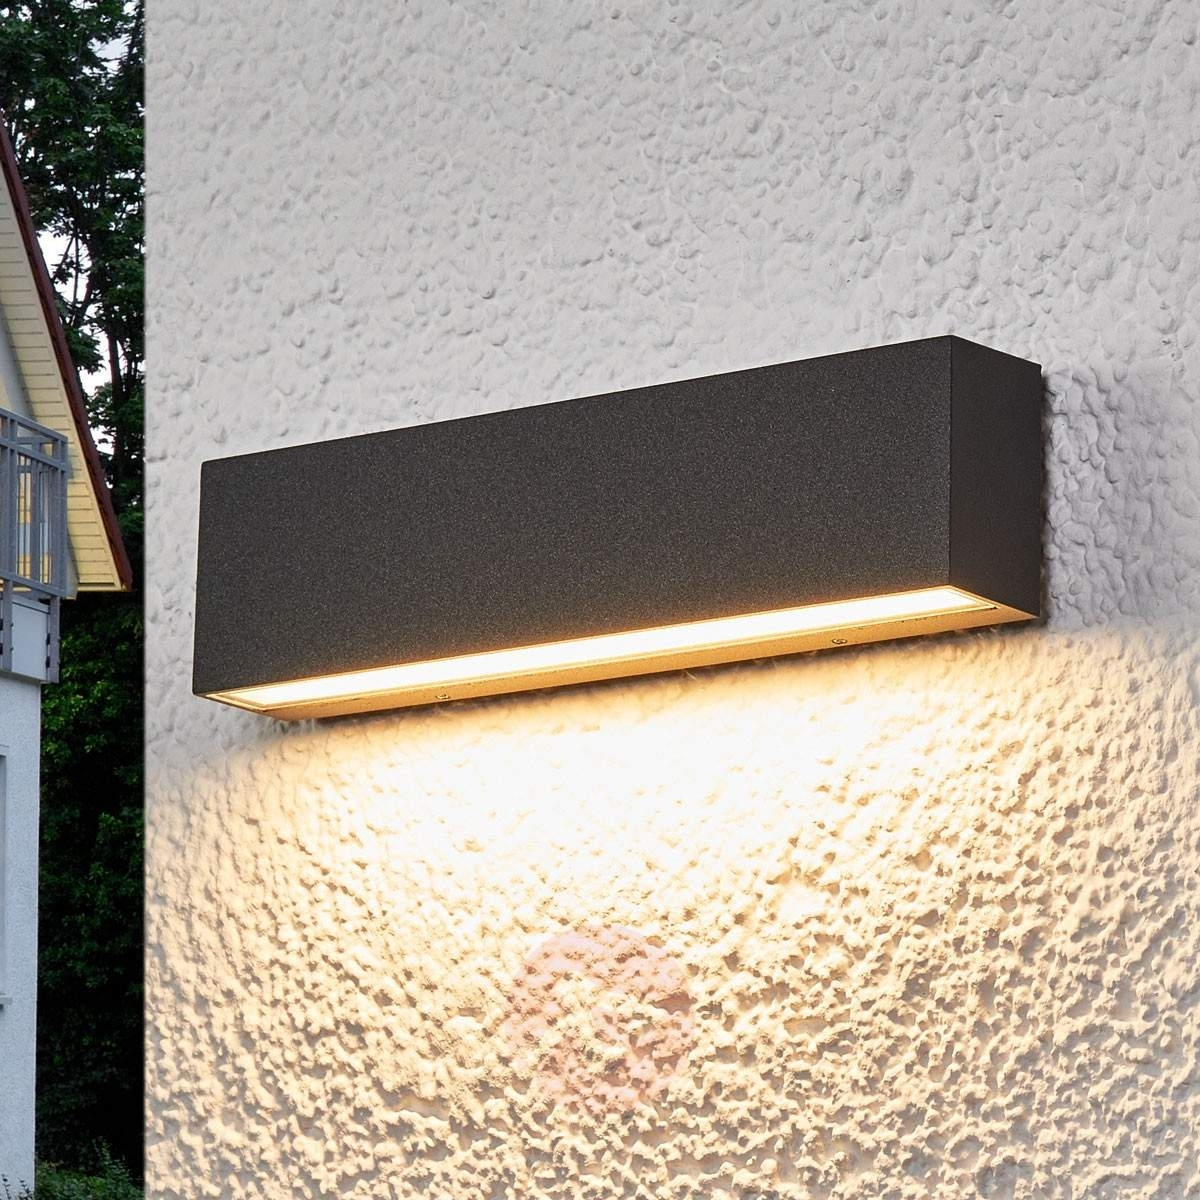 Elvira – Graphite Grey Ip65 Led Outdoor Wall Lamp | Lights.co (#8 of 15)